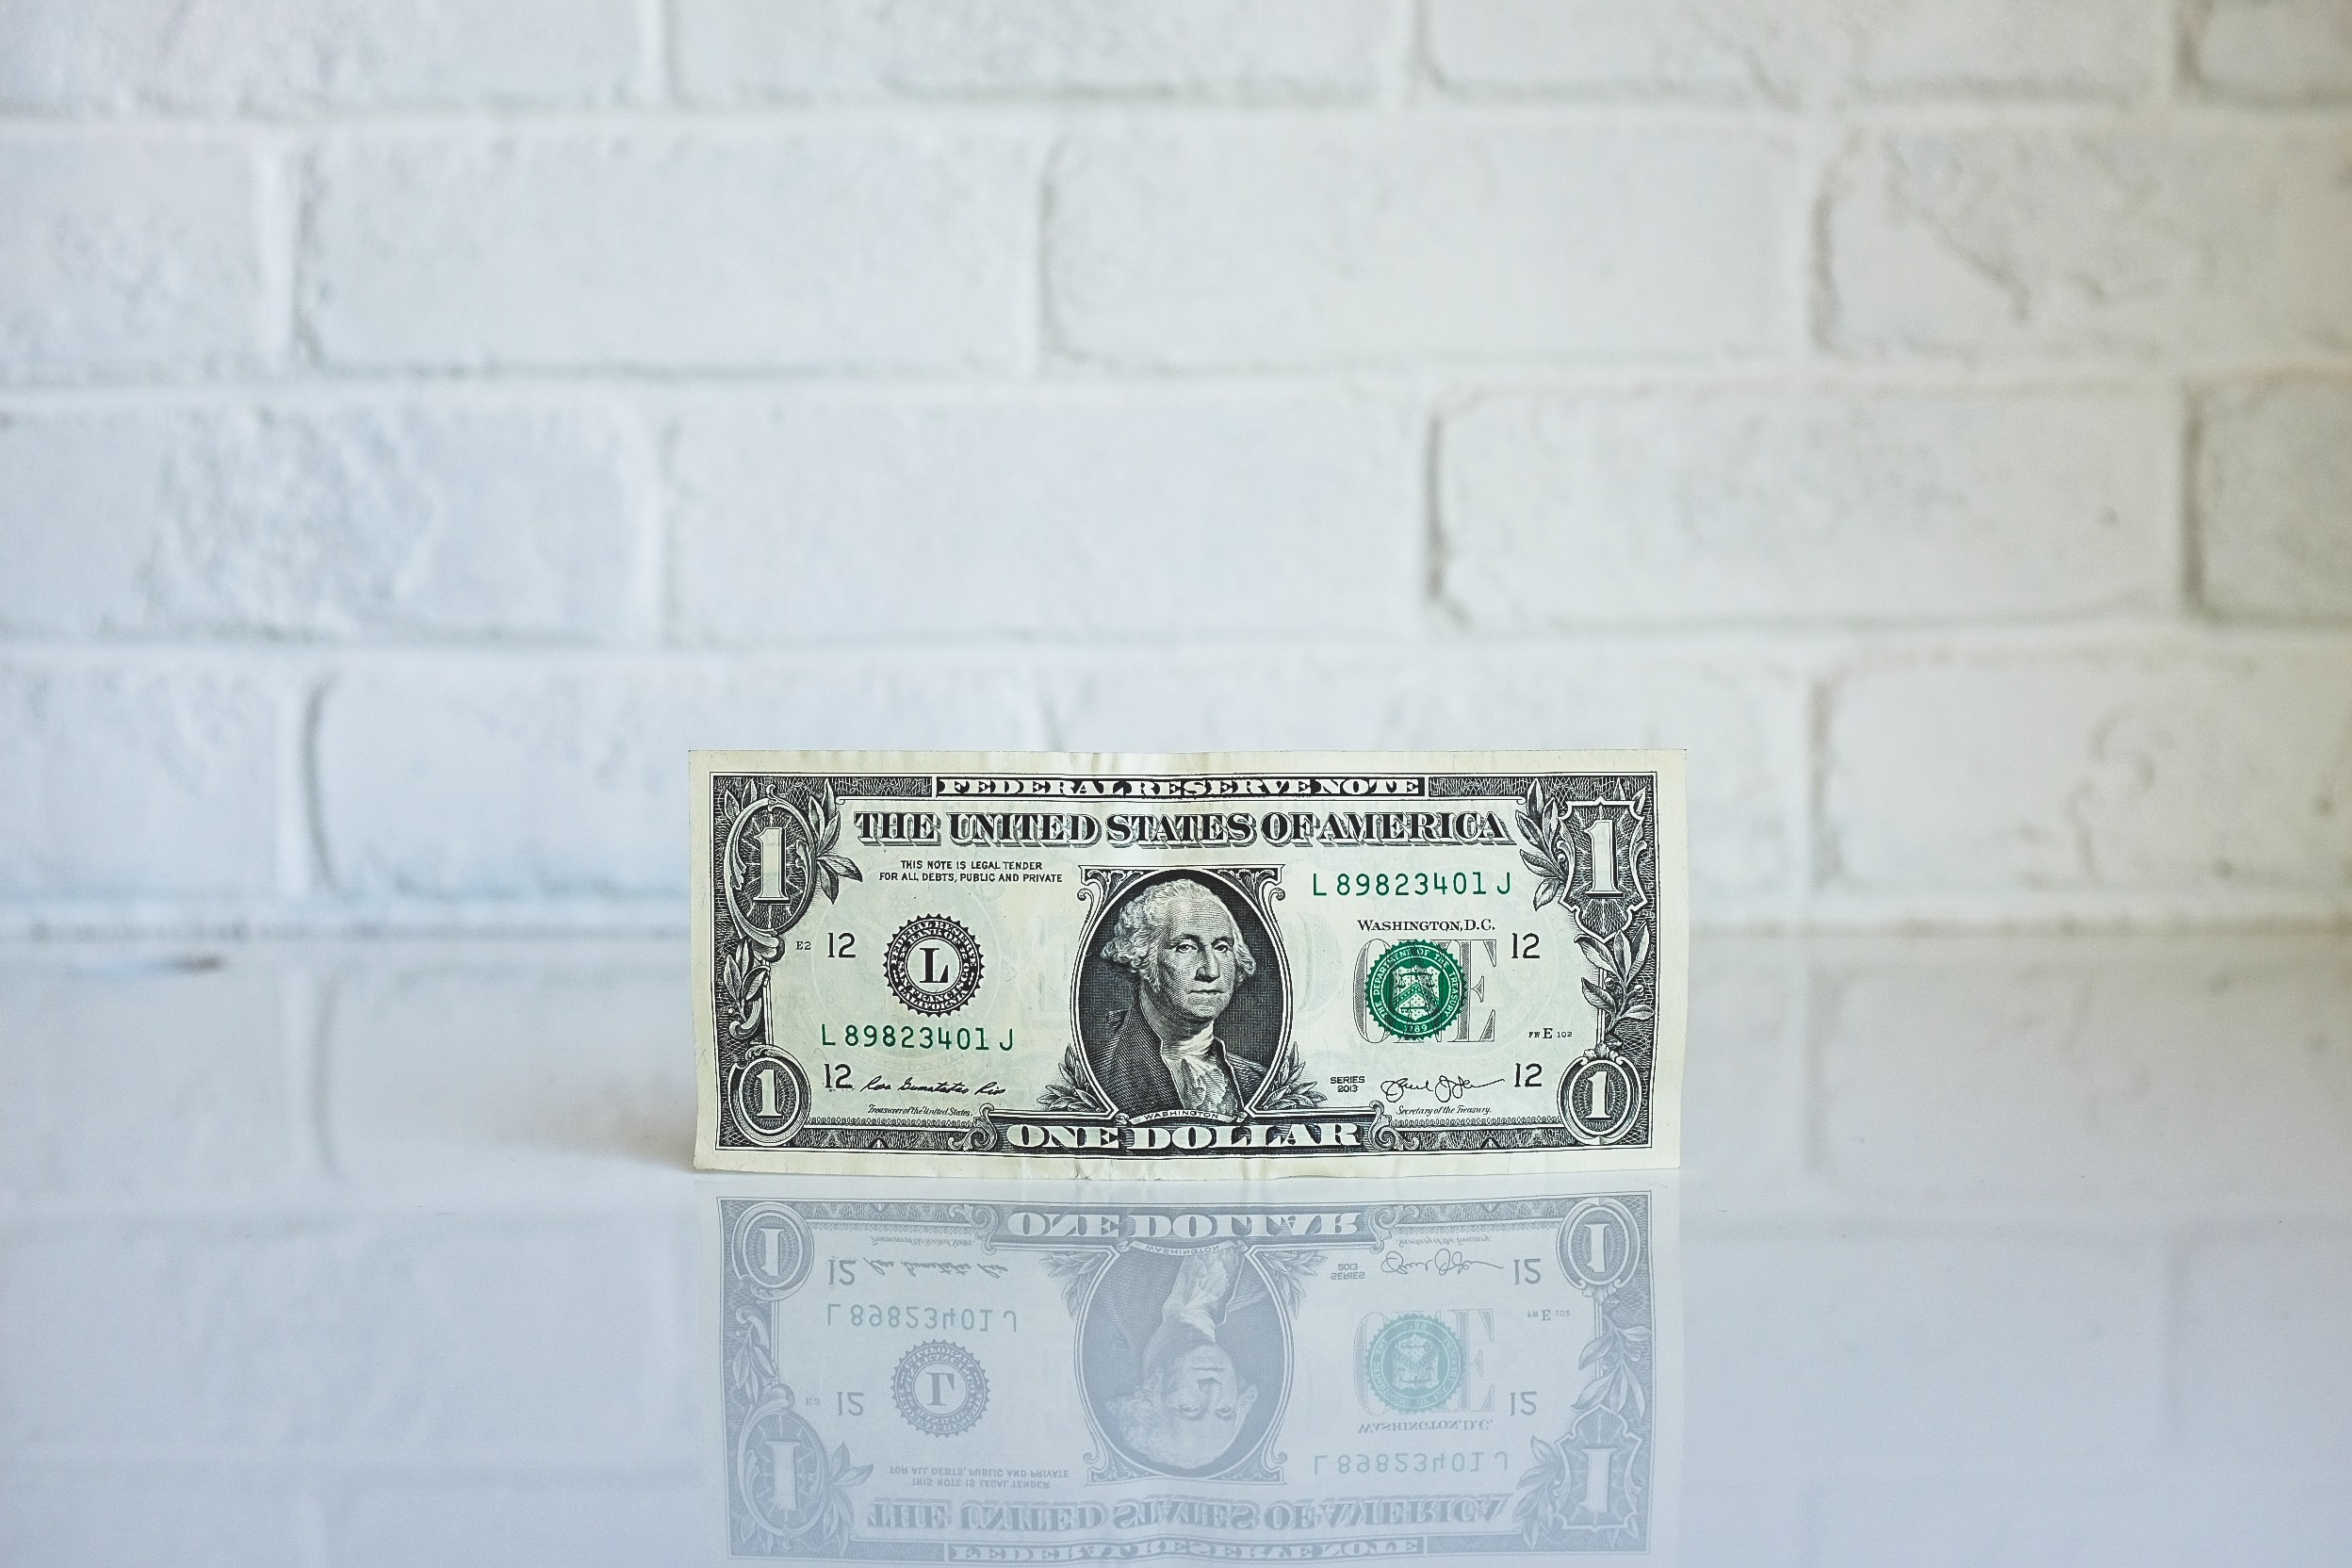 Dollar Bill | Photo by NeONBRAND on Unsplash